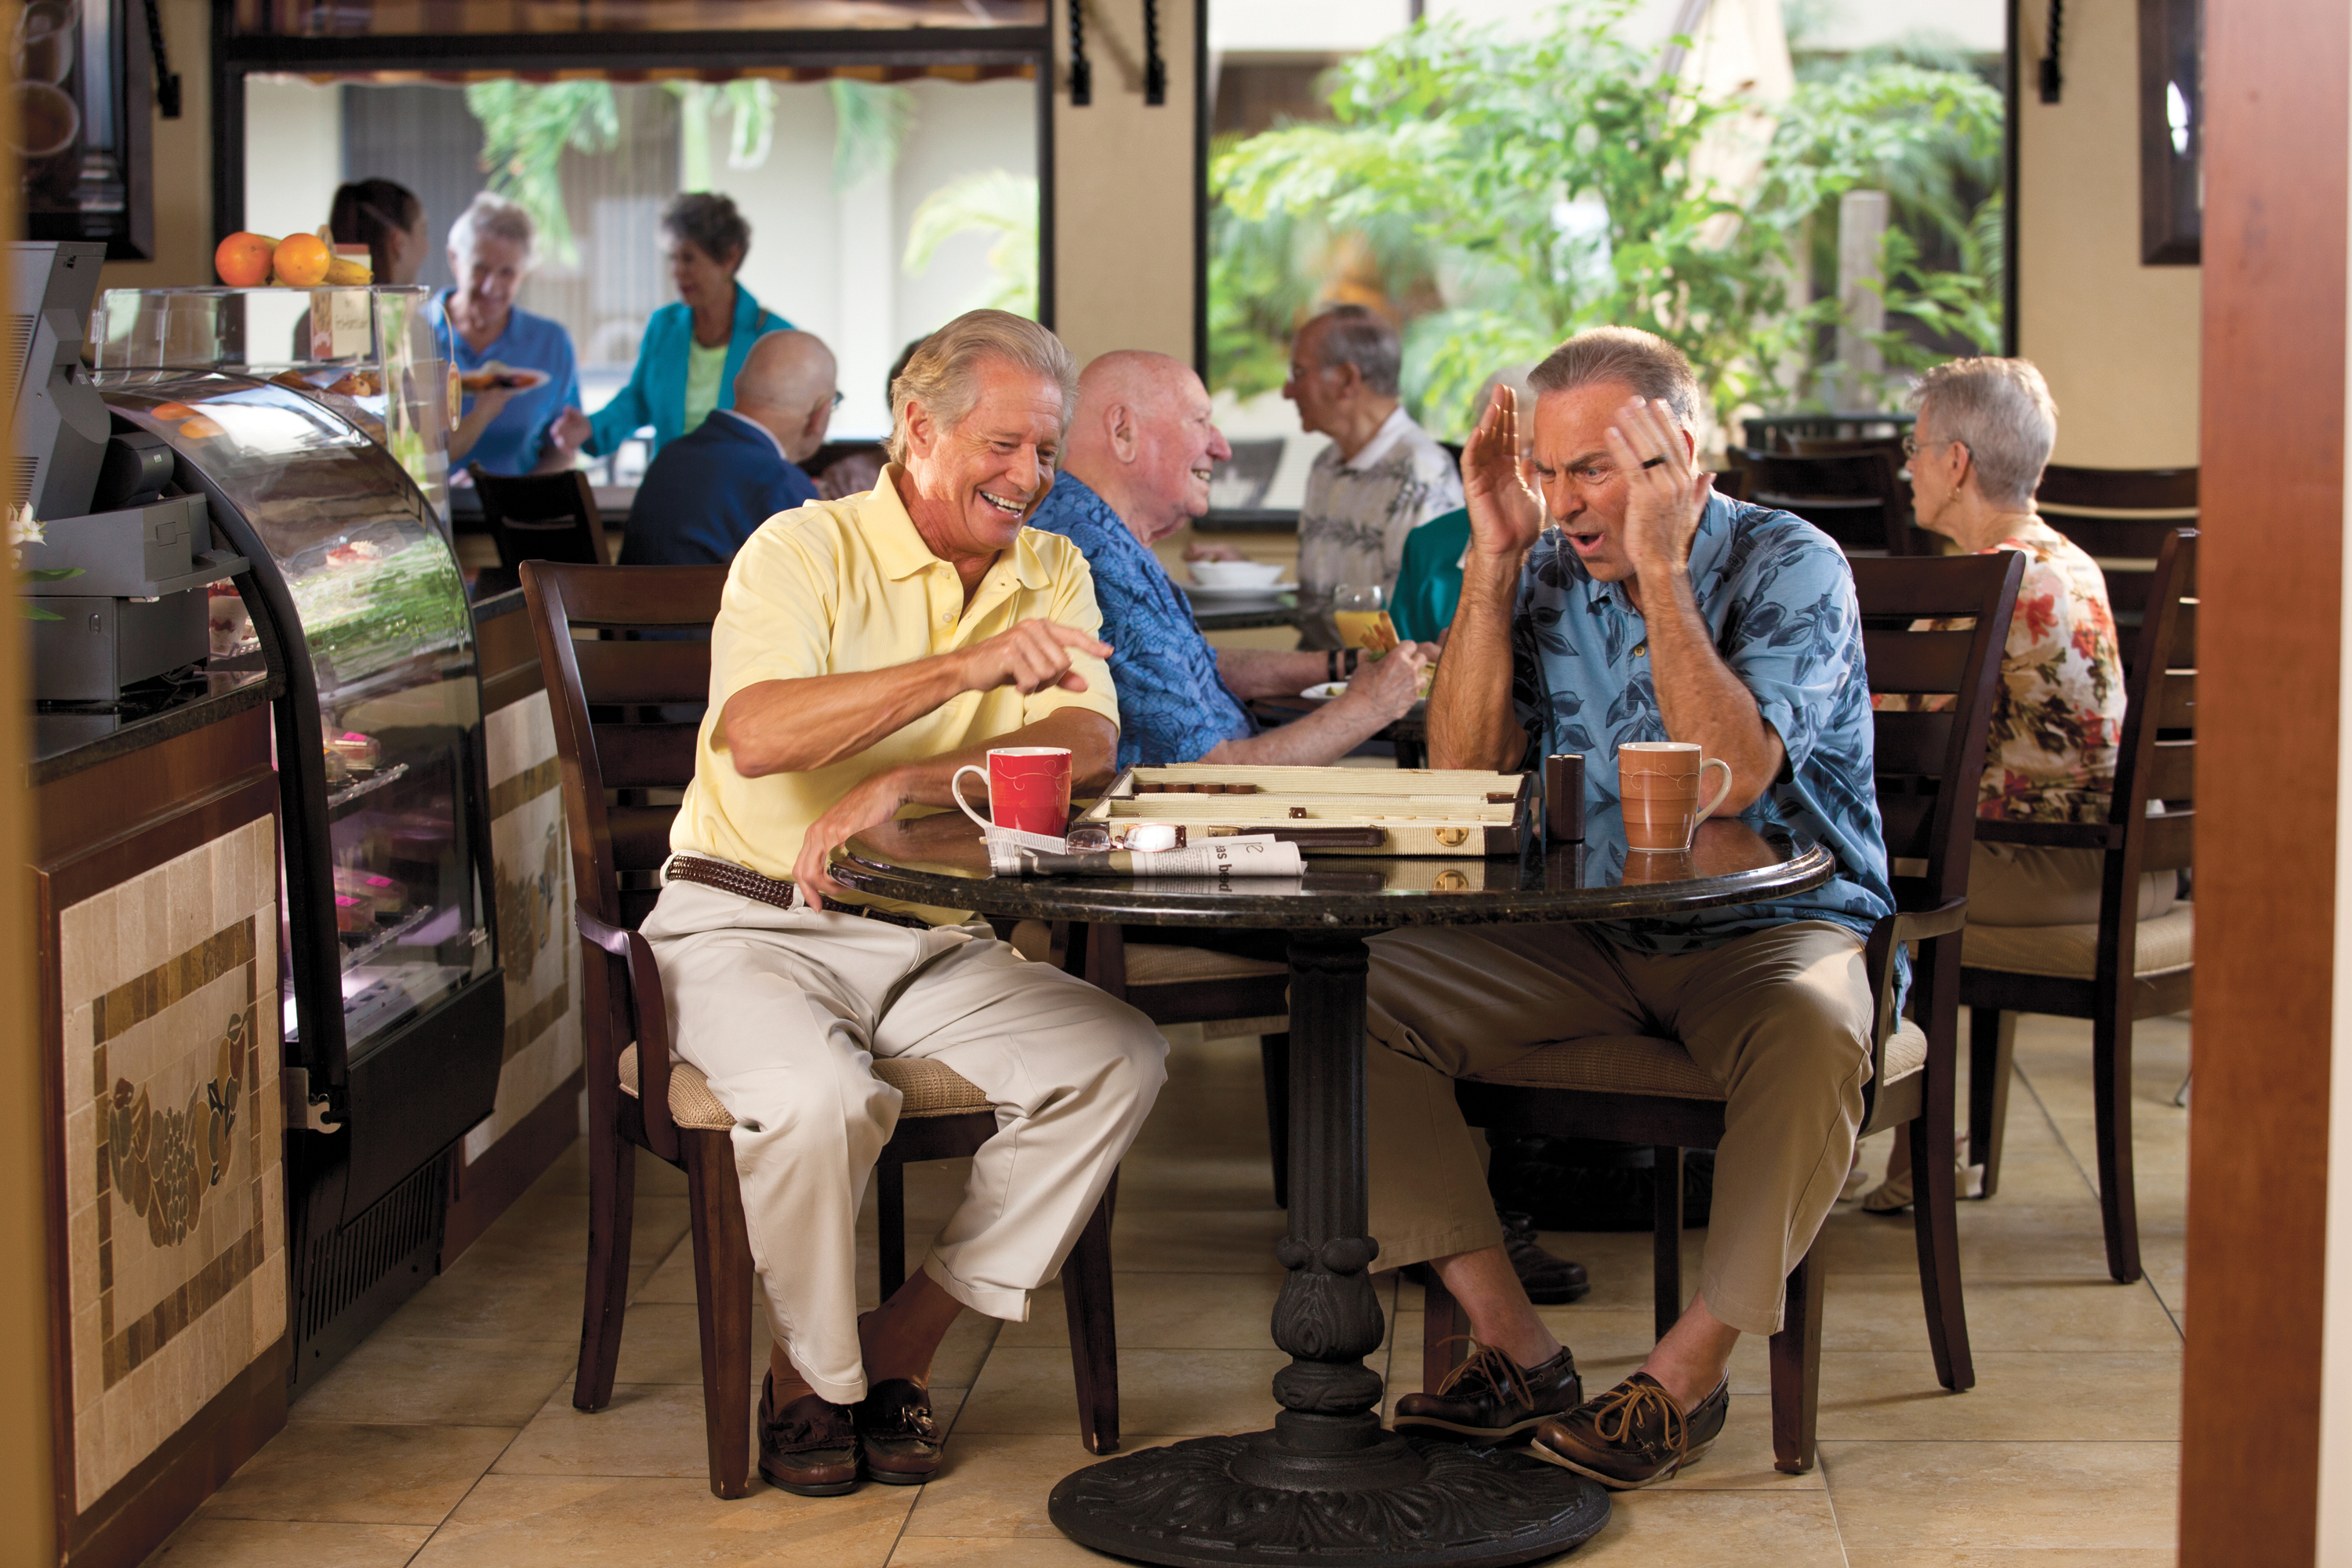 Gulf Coast Village Retirement Community at Cape Coral, FL